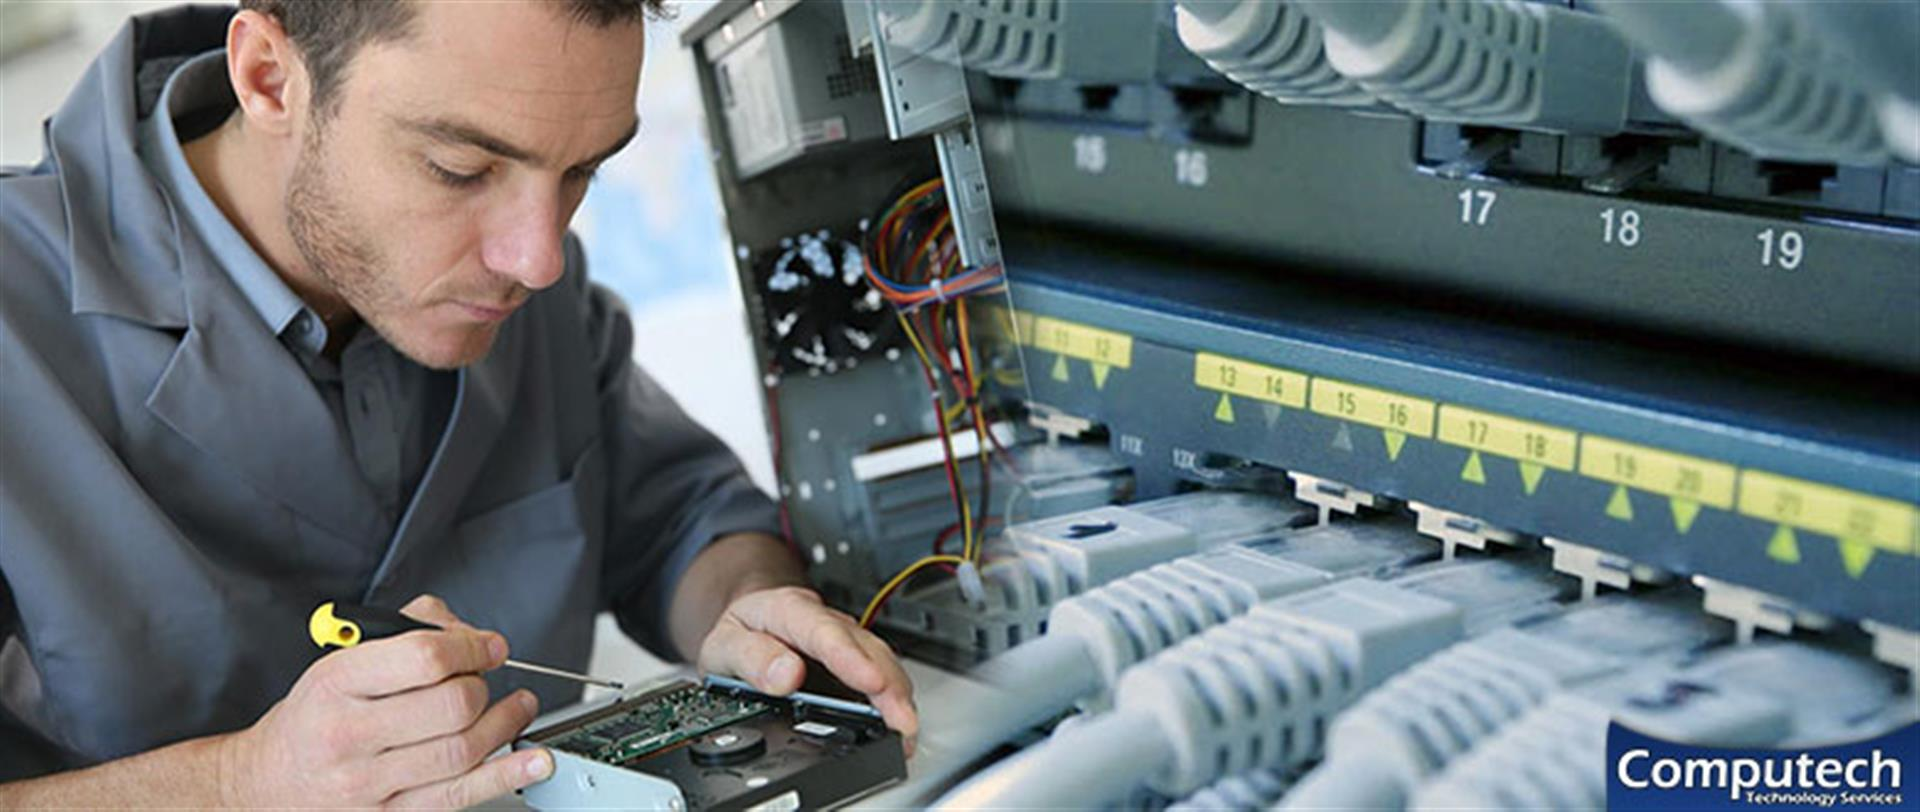 Williams Arizona On Site Computer & Printer Repairs, Networks, Telecom and Broadband Data Low Voltage Cabling Services